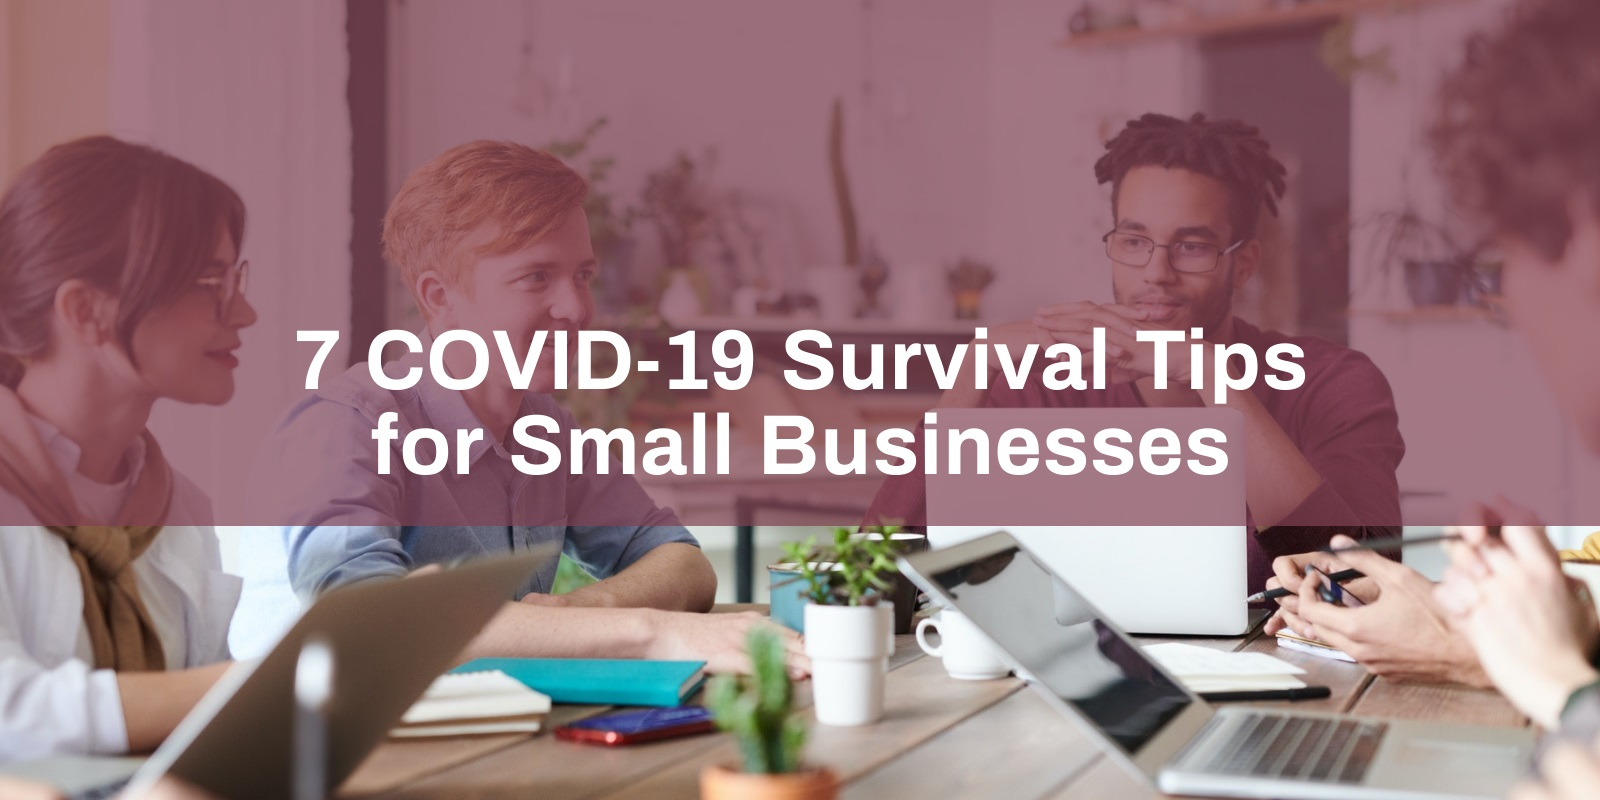 7 COVID-19 Survival Tips for Small Businesses